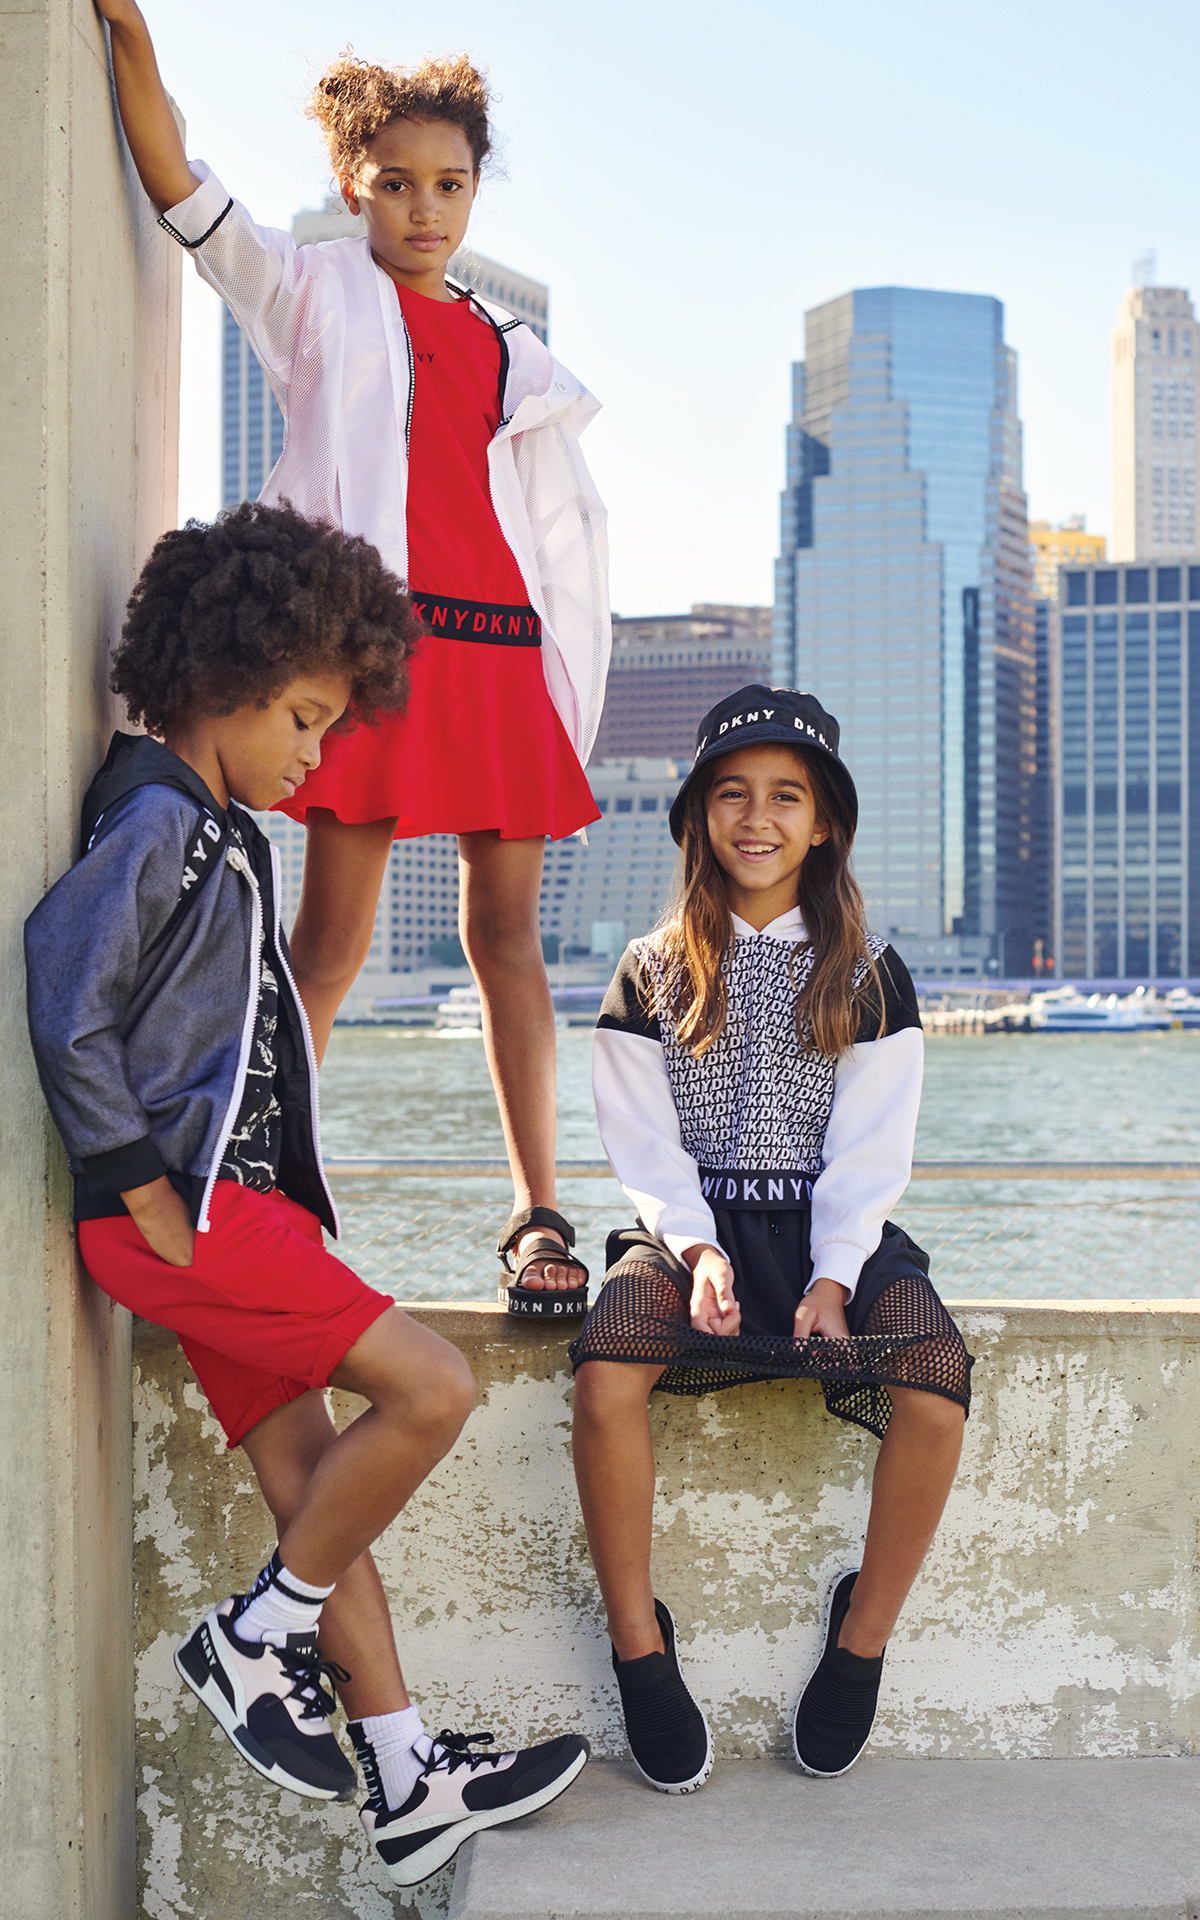 DKNY Kids La Vallée Village Image